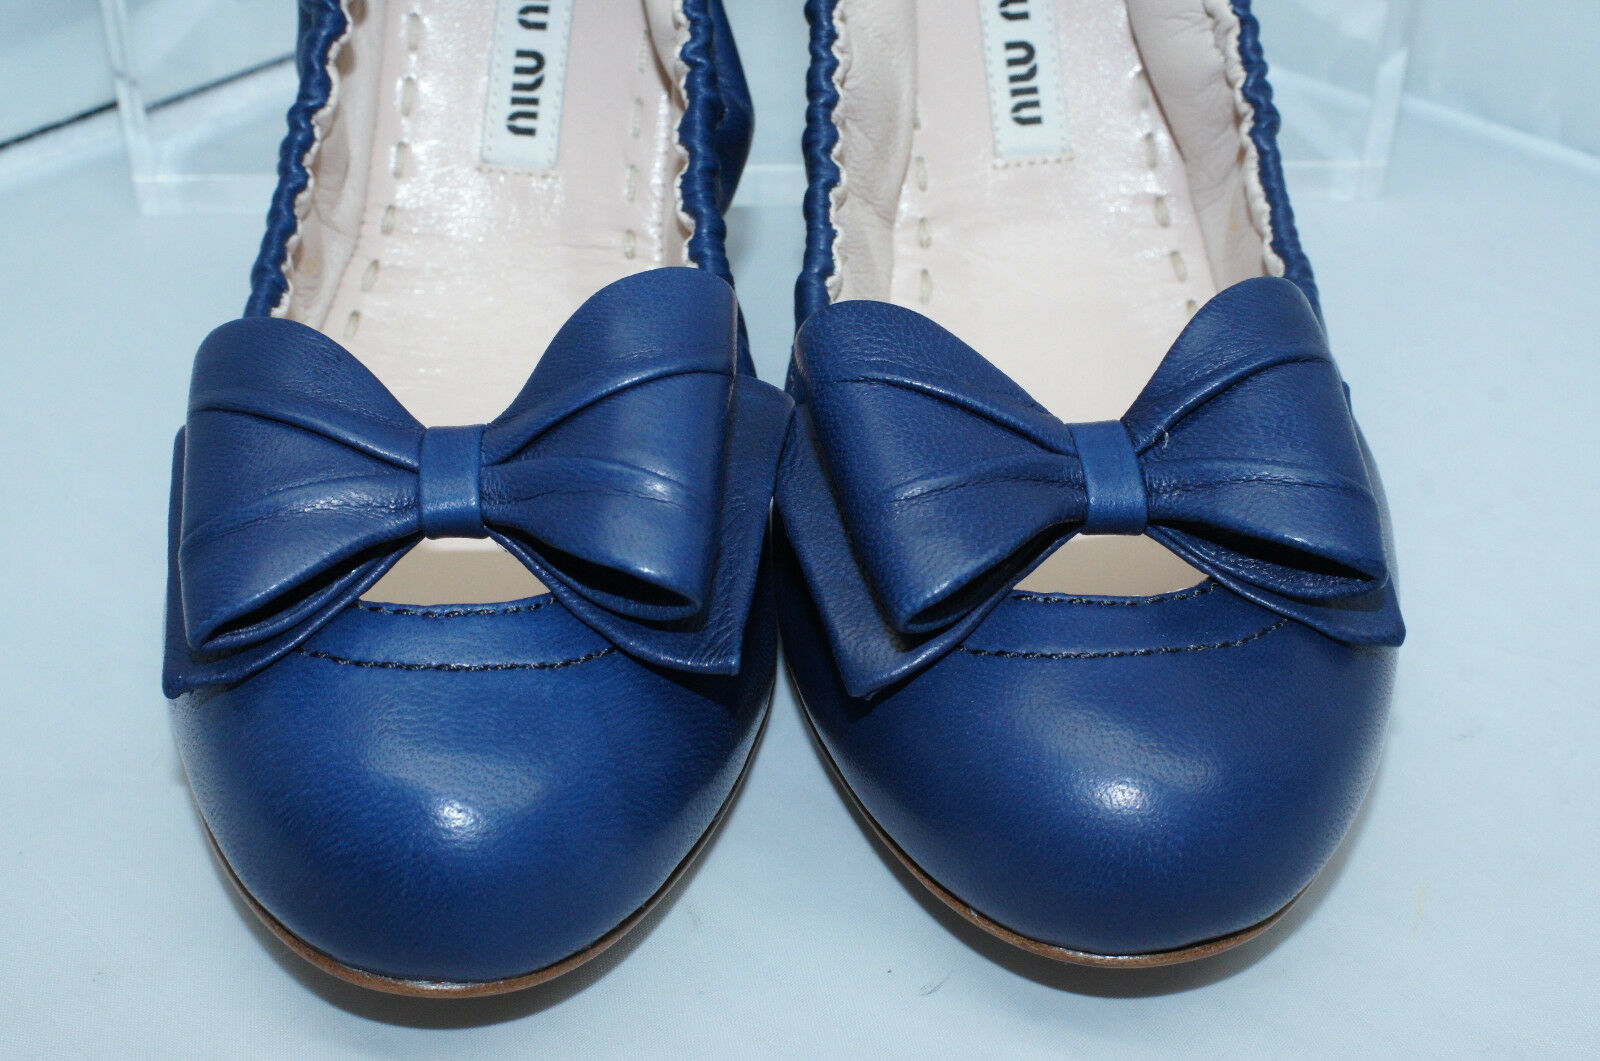 f93020a68e4 New Miu Miu Ballet Flats Shoes Size 39.5 39.5 39.5 Blue Calzature Donna  Leather d088e1